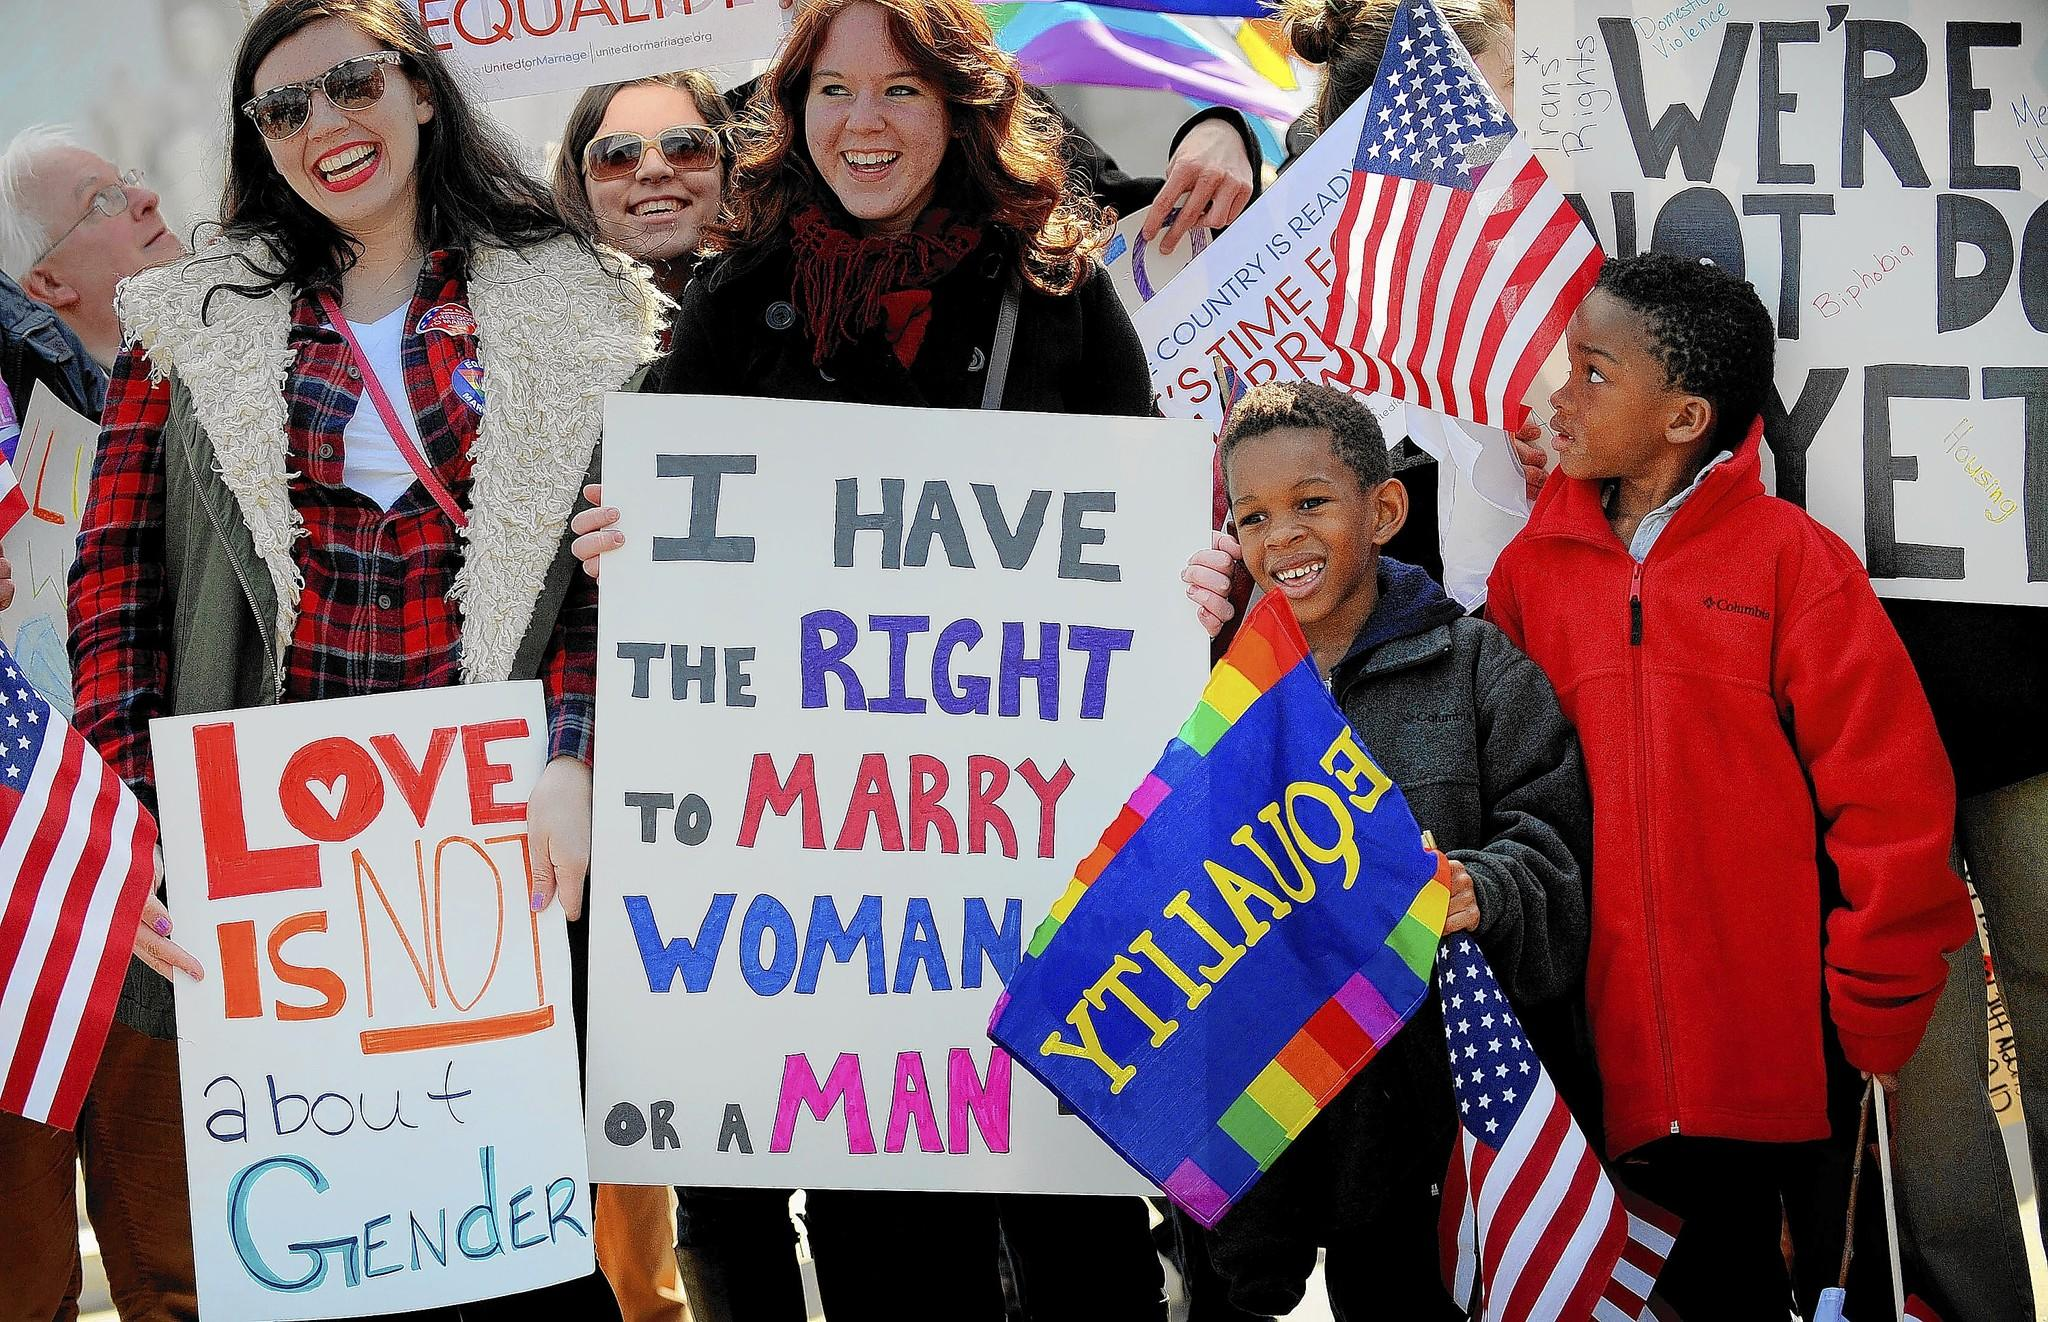 Demonstrators rallied in front of the U.S. Supreme Court in March as the high court debated the Defense of Marriage Act.